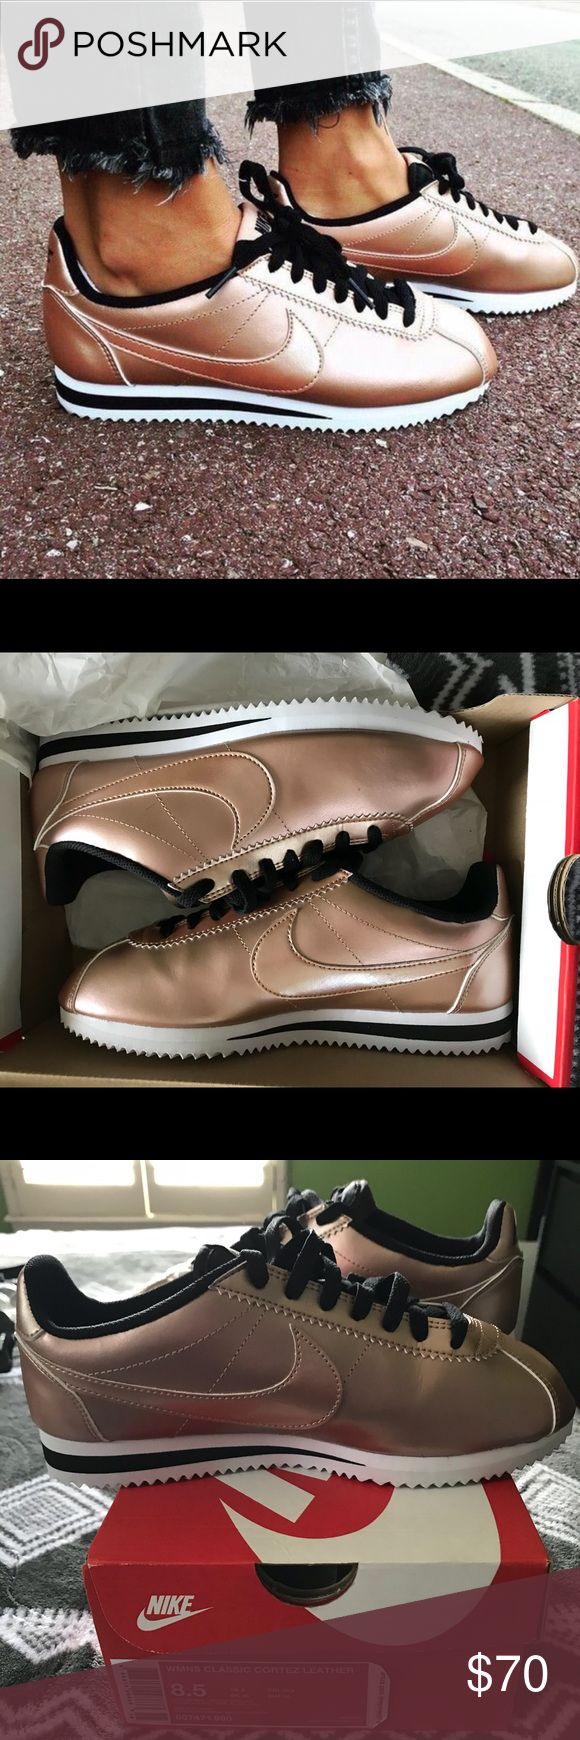 NIKE CORTEZ ROSE GOLD NIKE CORTEZ  CLEAN! WORN ONCE! LIKE NEW! SOLD OUT IN STORES!!!! EXTREMELY LIGHTWEIGHT NIKE CORTEZ KNOWN FOR THEIR UNBEATABLE COMFORT! ADD STYLE TO ANY OUTFIT WITH THIS CLASSIC RUNNING SHOE! Nike Shoes